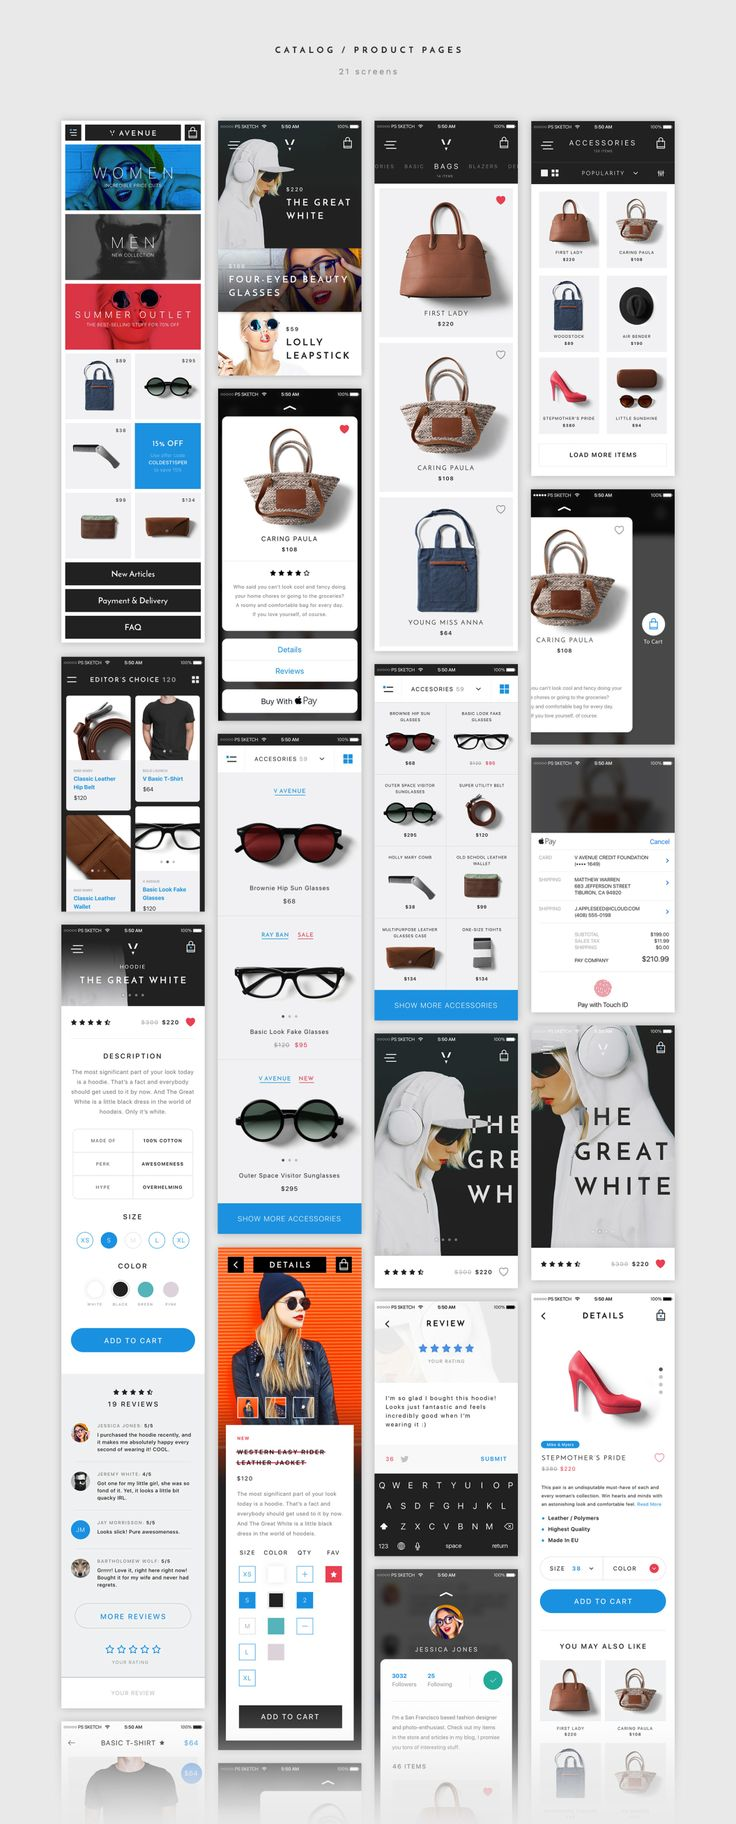 We're happy to introduce you V Avenue , an advanced mobile UI Kit for Sketch & Photoshop with a strong focus on e-commerce. These 100 mobile app templates of the highest quality with a ultra clean and sharp look can become your most useful tool for mobile app design. We abandoned all boring solutions and font combinations choices to develop a unique and vivid style, and today we're happy to offer you the result of our efforts.